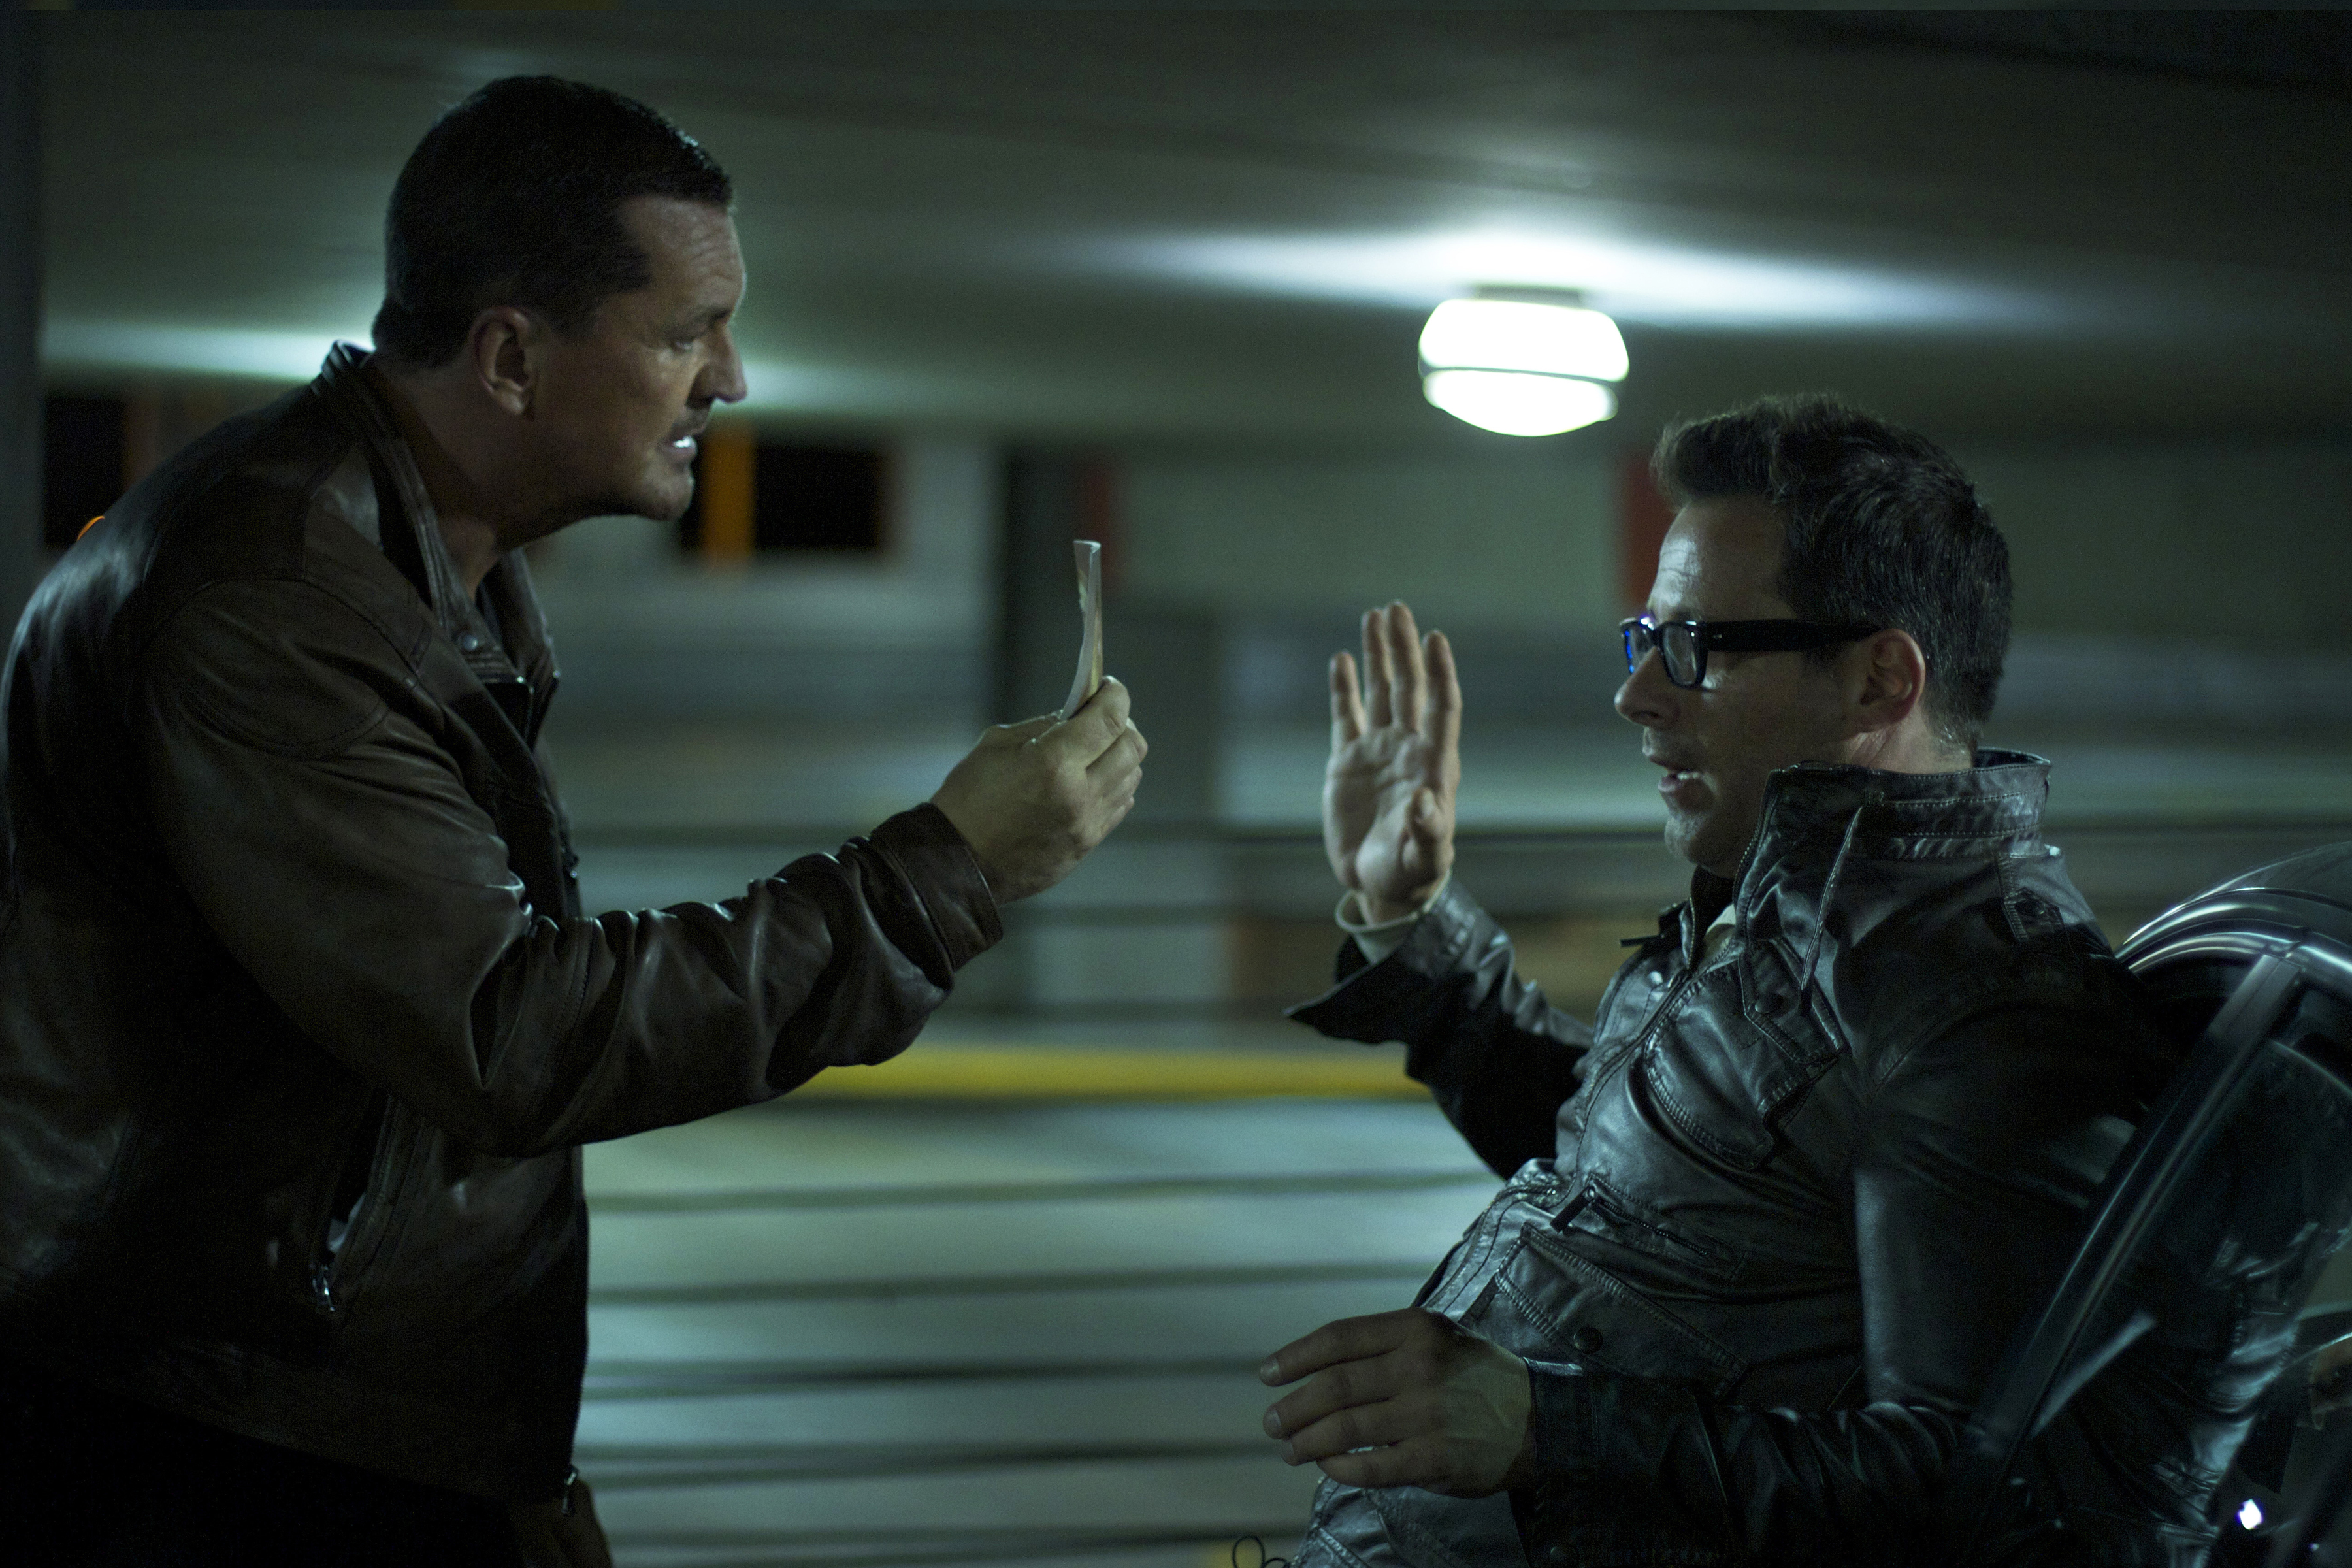 Still of Craig Fairbrass and Johnny Messner in The Outsider (2014)